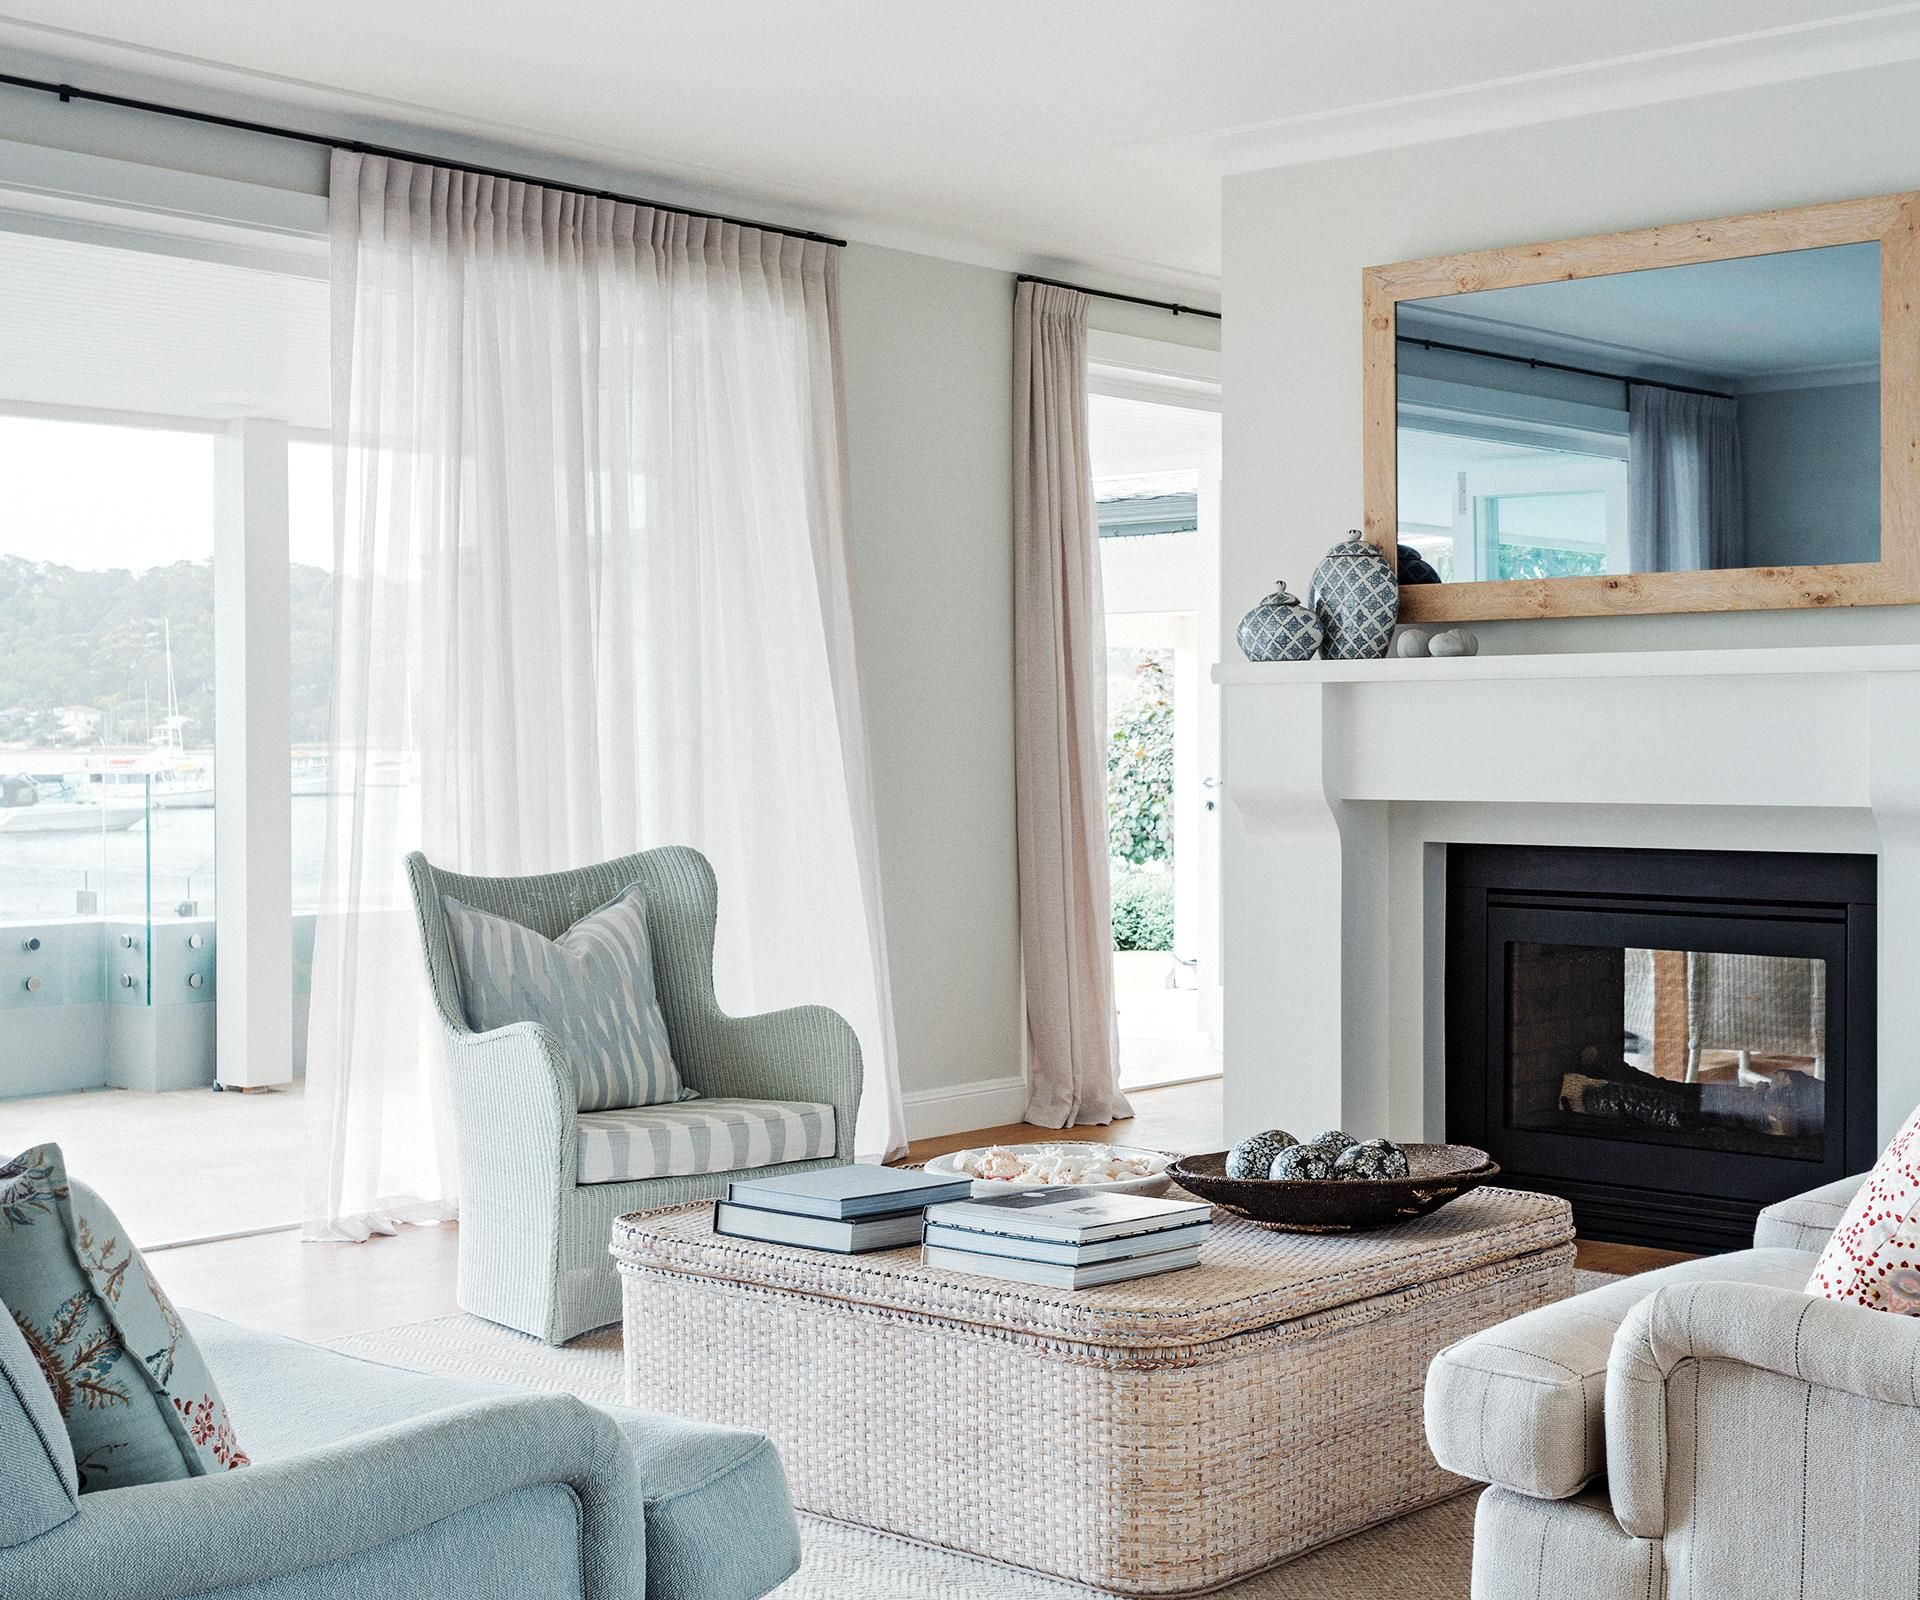 A Sydney Family's Hamptons-style Beachfront Sanctuary